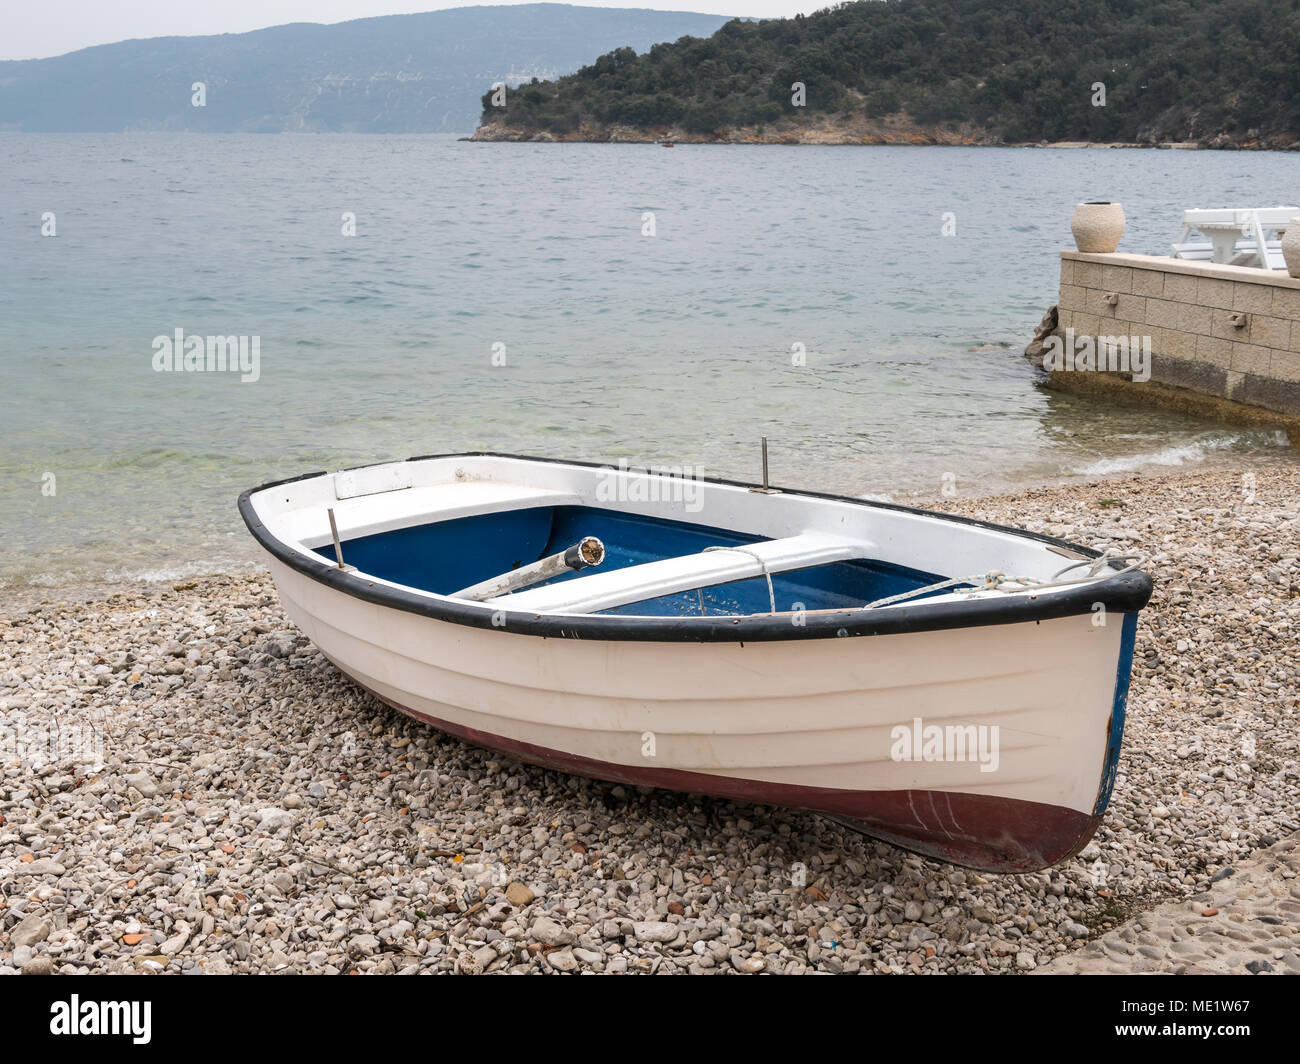 A small boat in the harbor of Valun (Island Cres, Croatia) on a cloudy day in spring Stock Photo